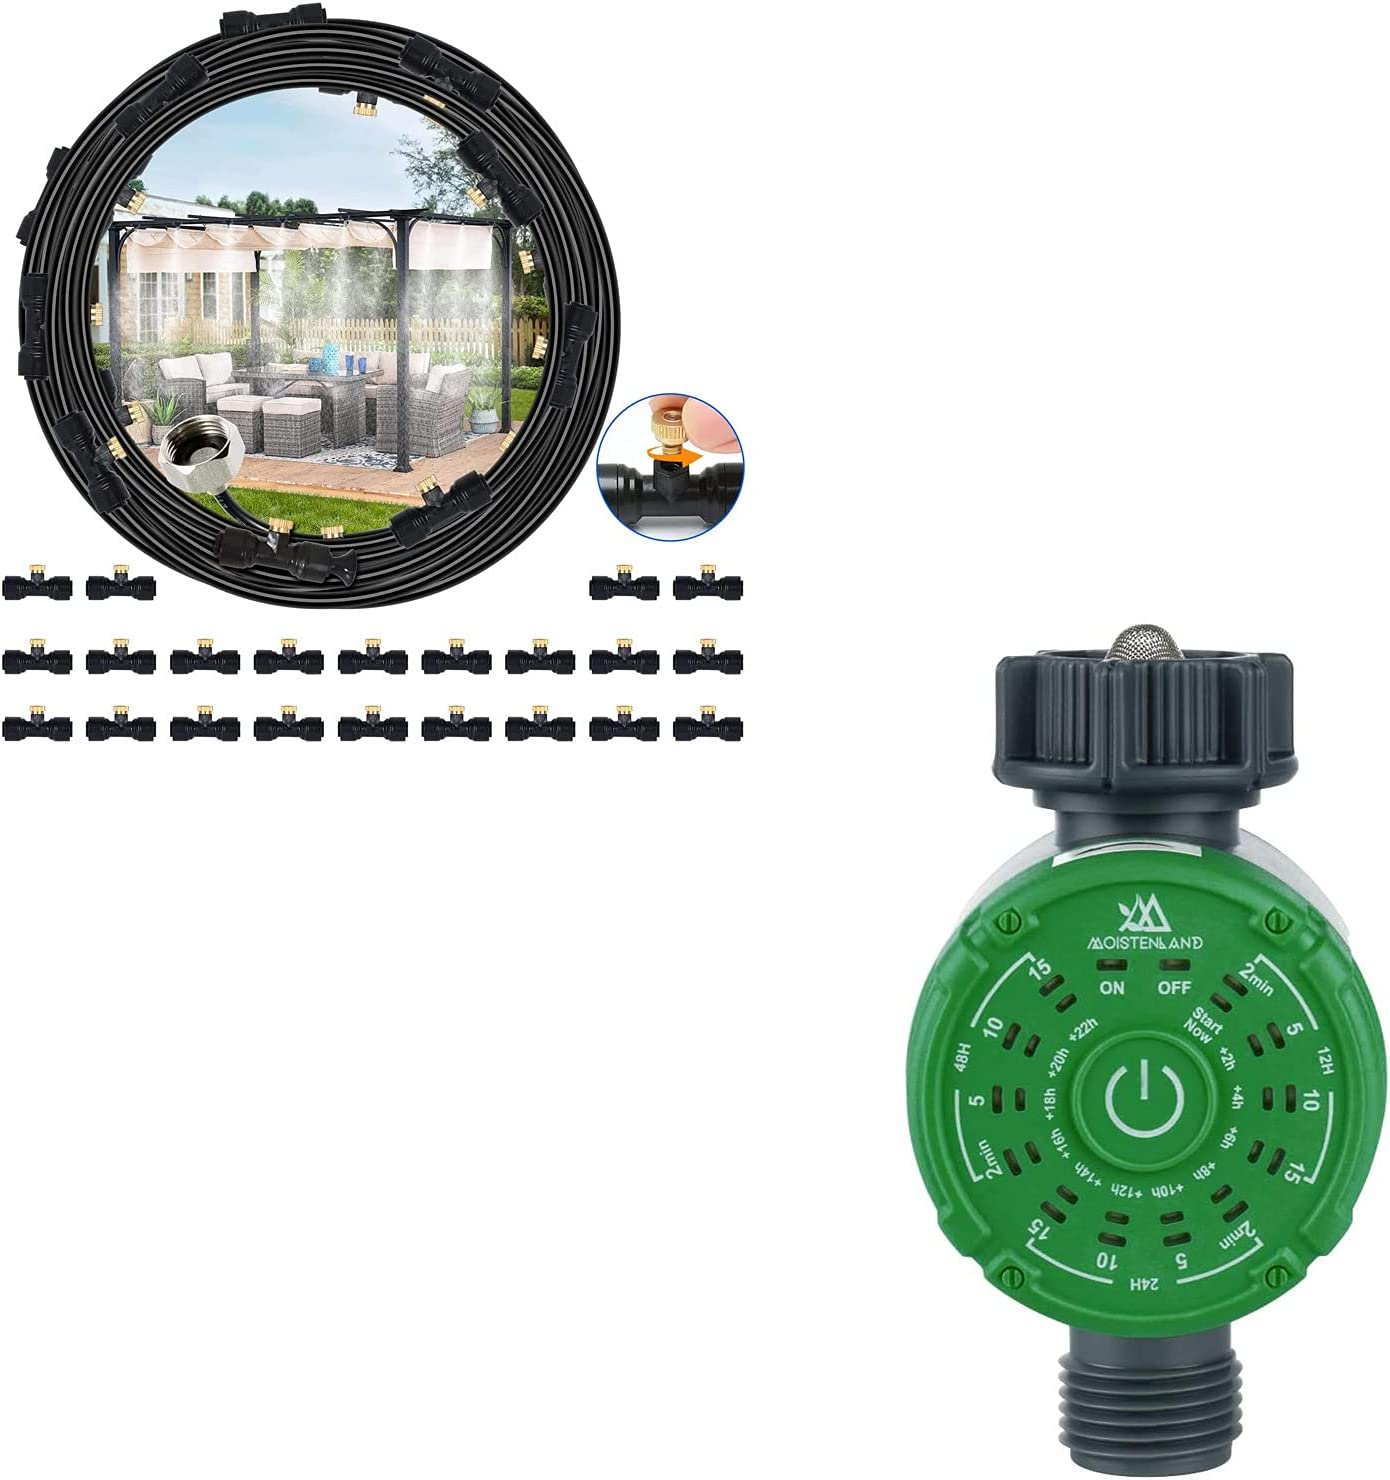 moistenland Misting System Super sale period limited Minneapolis Mall 18M Watering Hose Timer